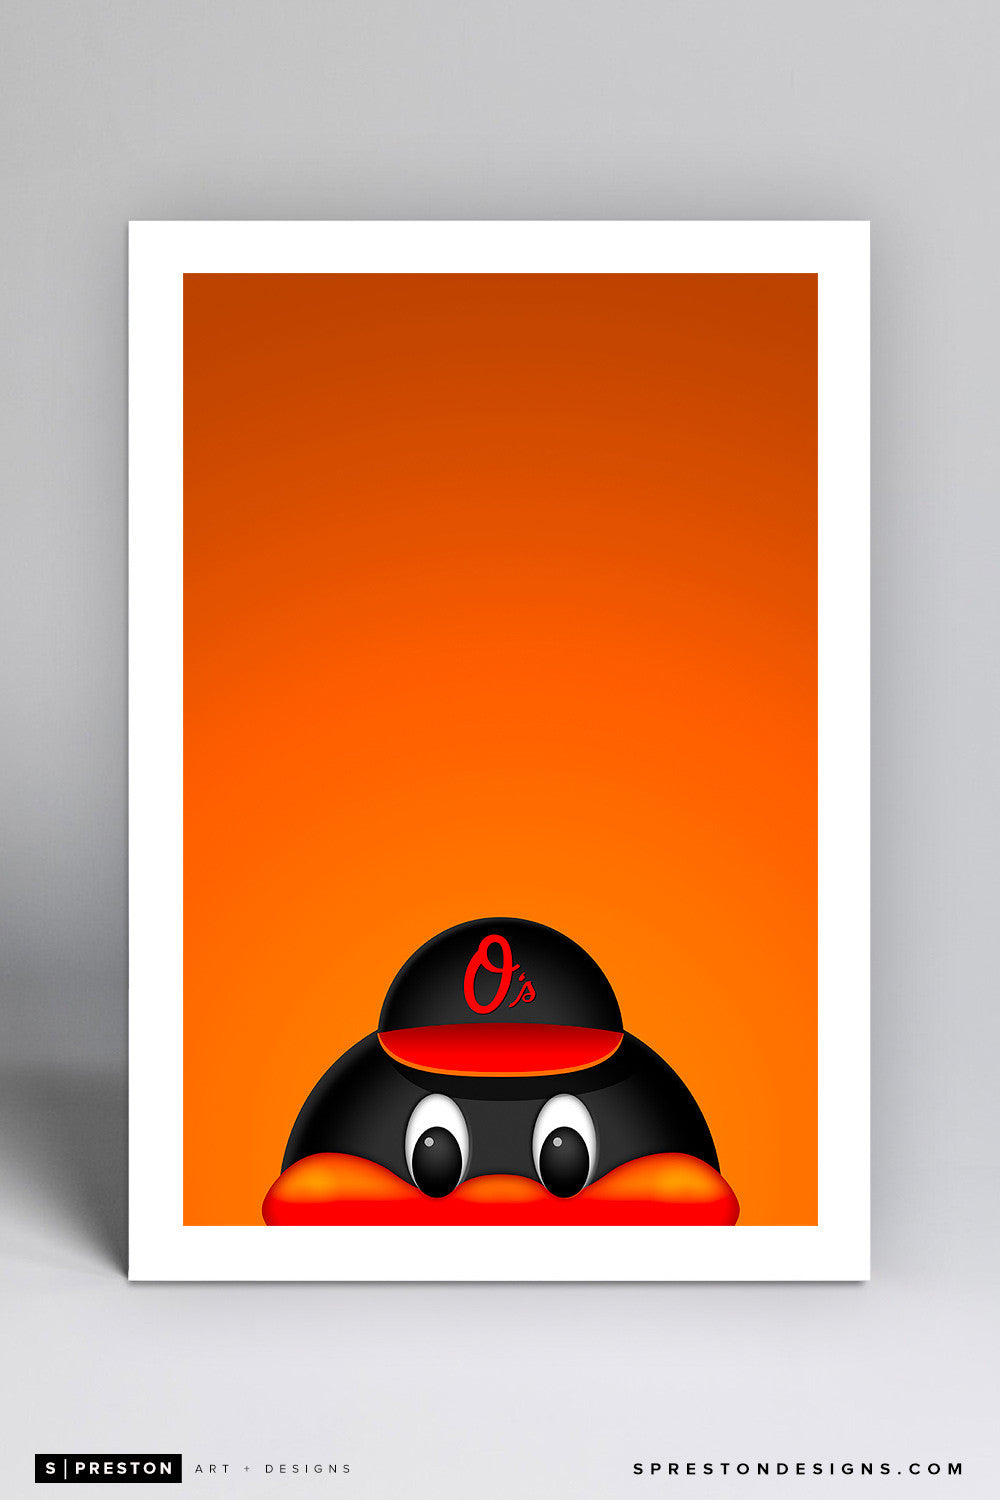 Minimalist Oriole Bird Art Print - Baltimore Orioles - S. Preston Art + Designs